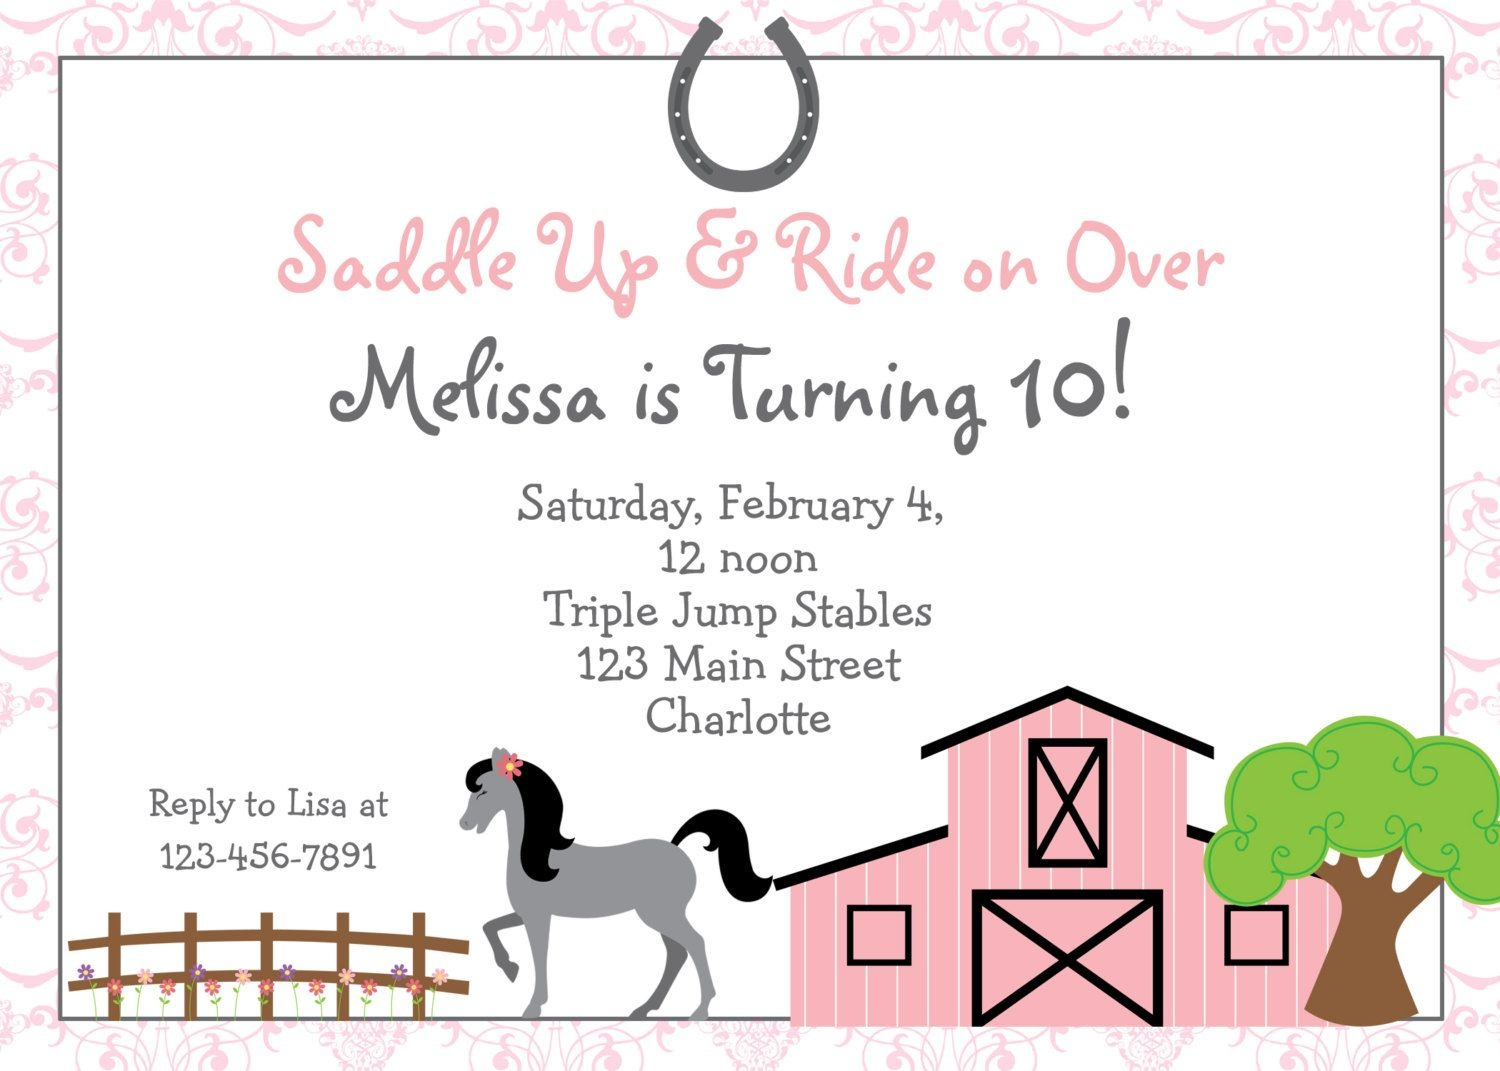 Free Printable Horse Riding Party Invitations | Birthday Invitation - Free Printable Event Invitations